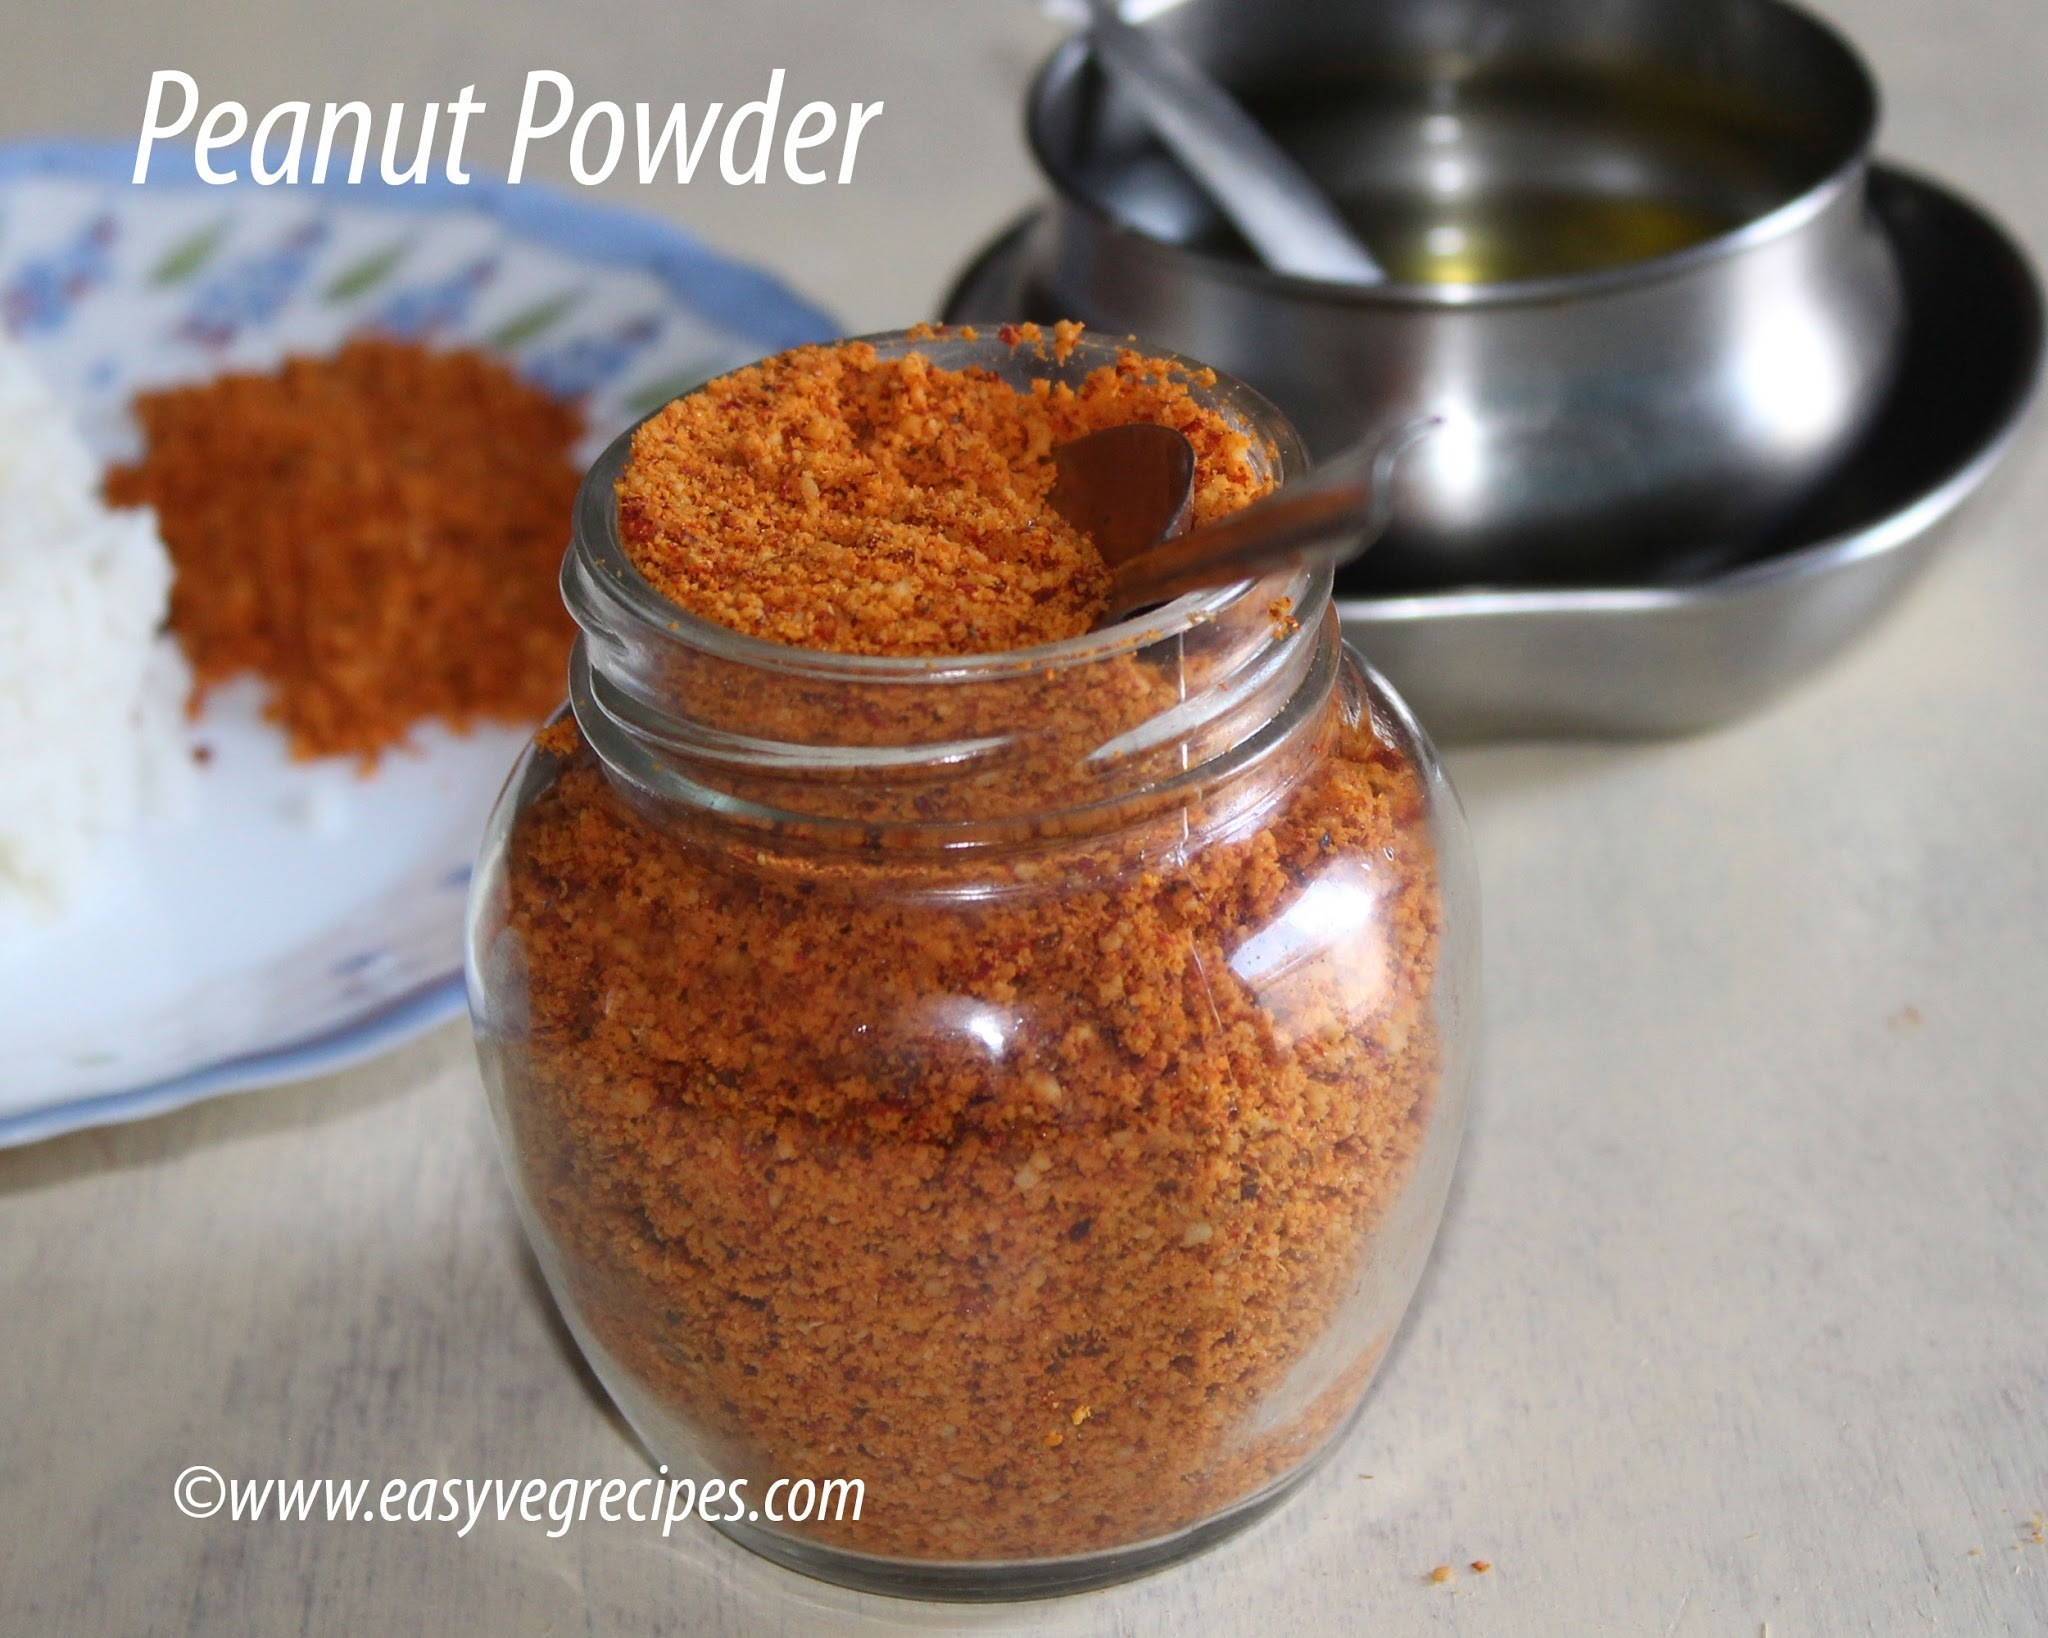 Peanut Powder Recipe -- How to make Peanut Powder for Rice